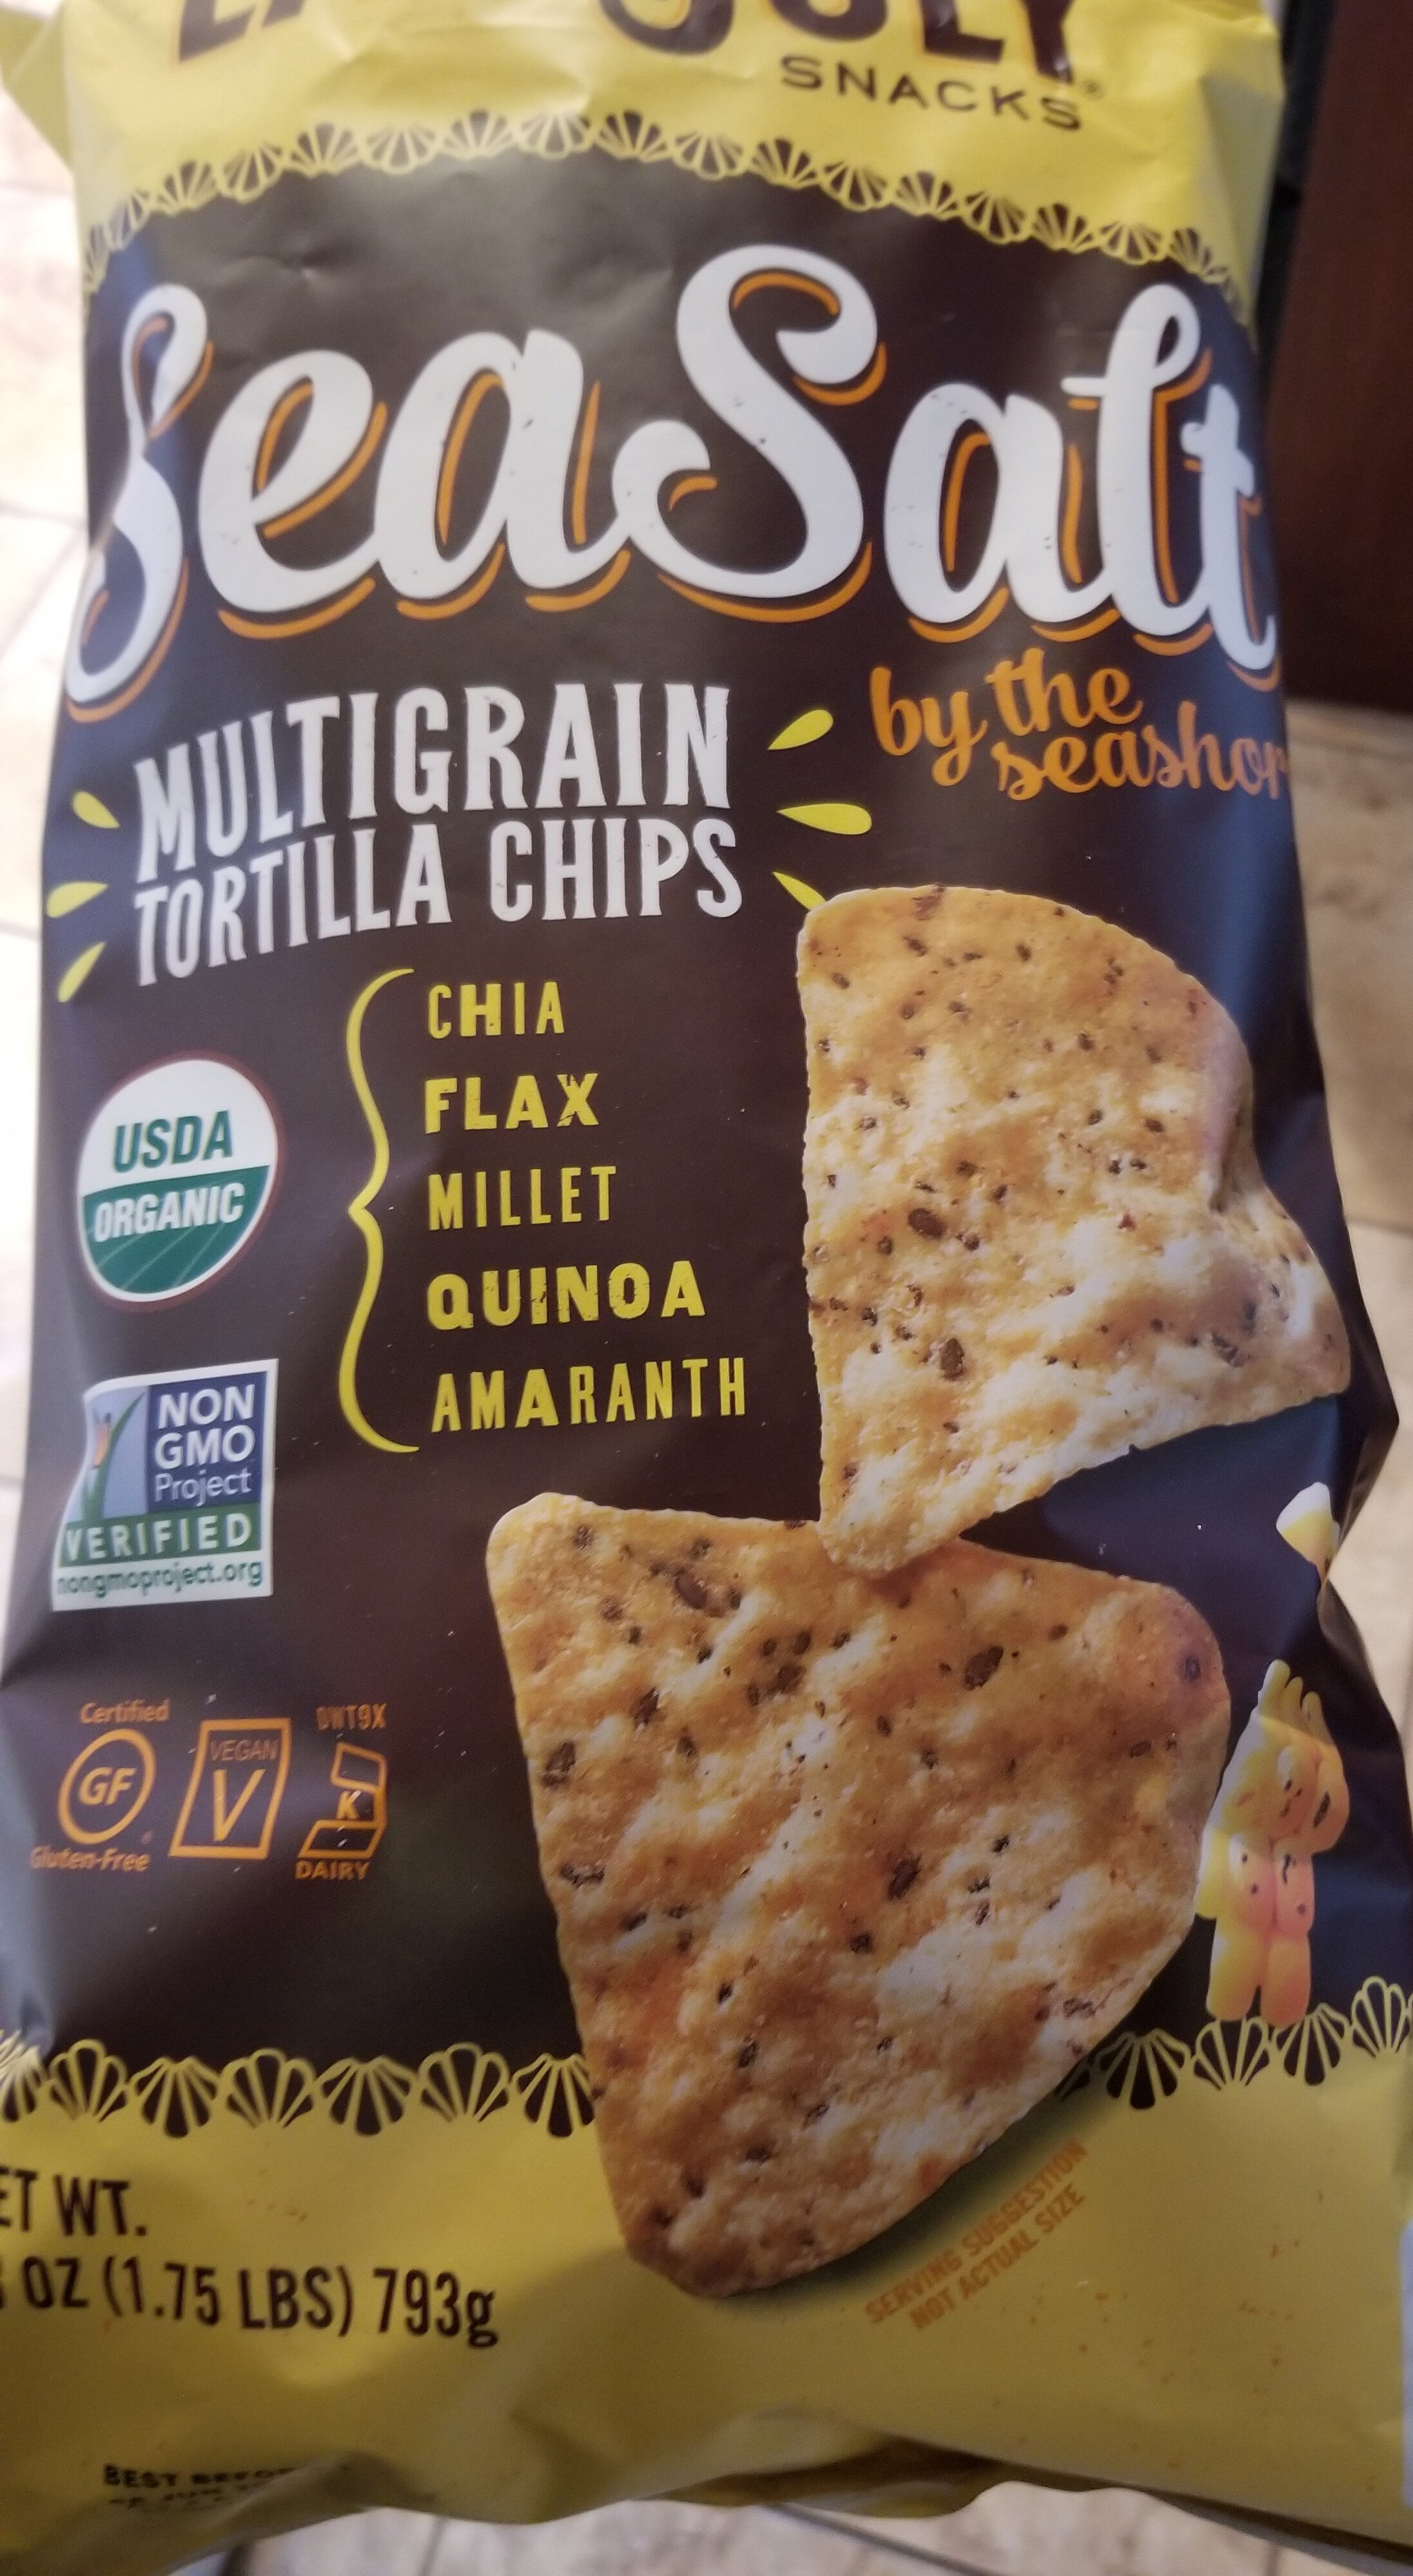 Sea salt multigrain tortilla chips - Product